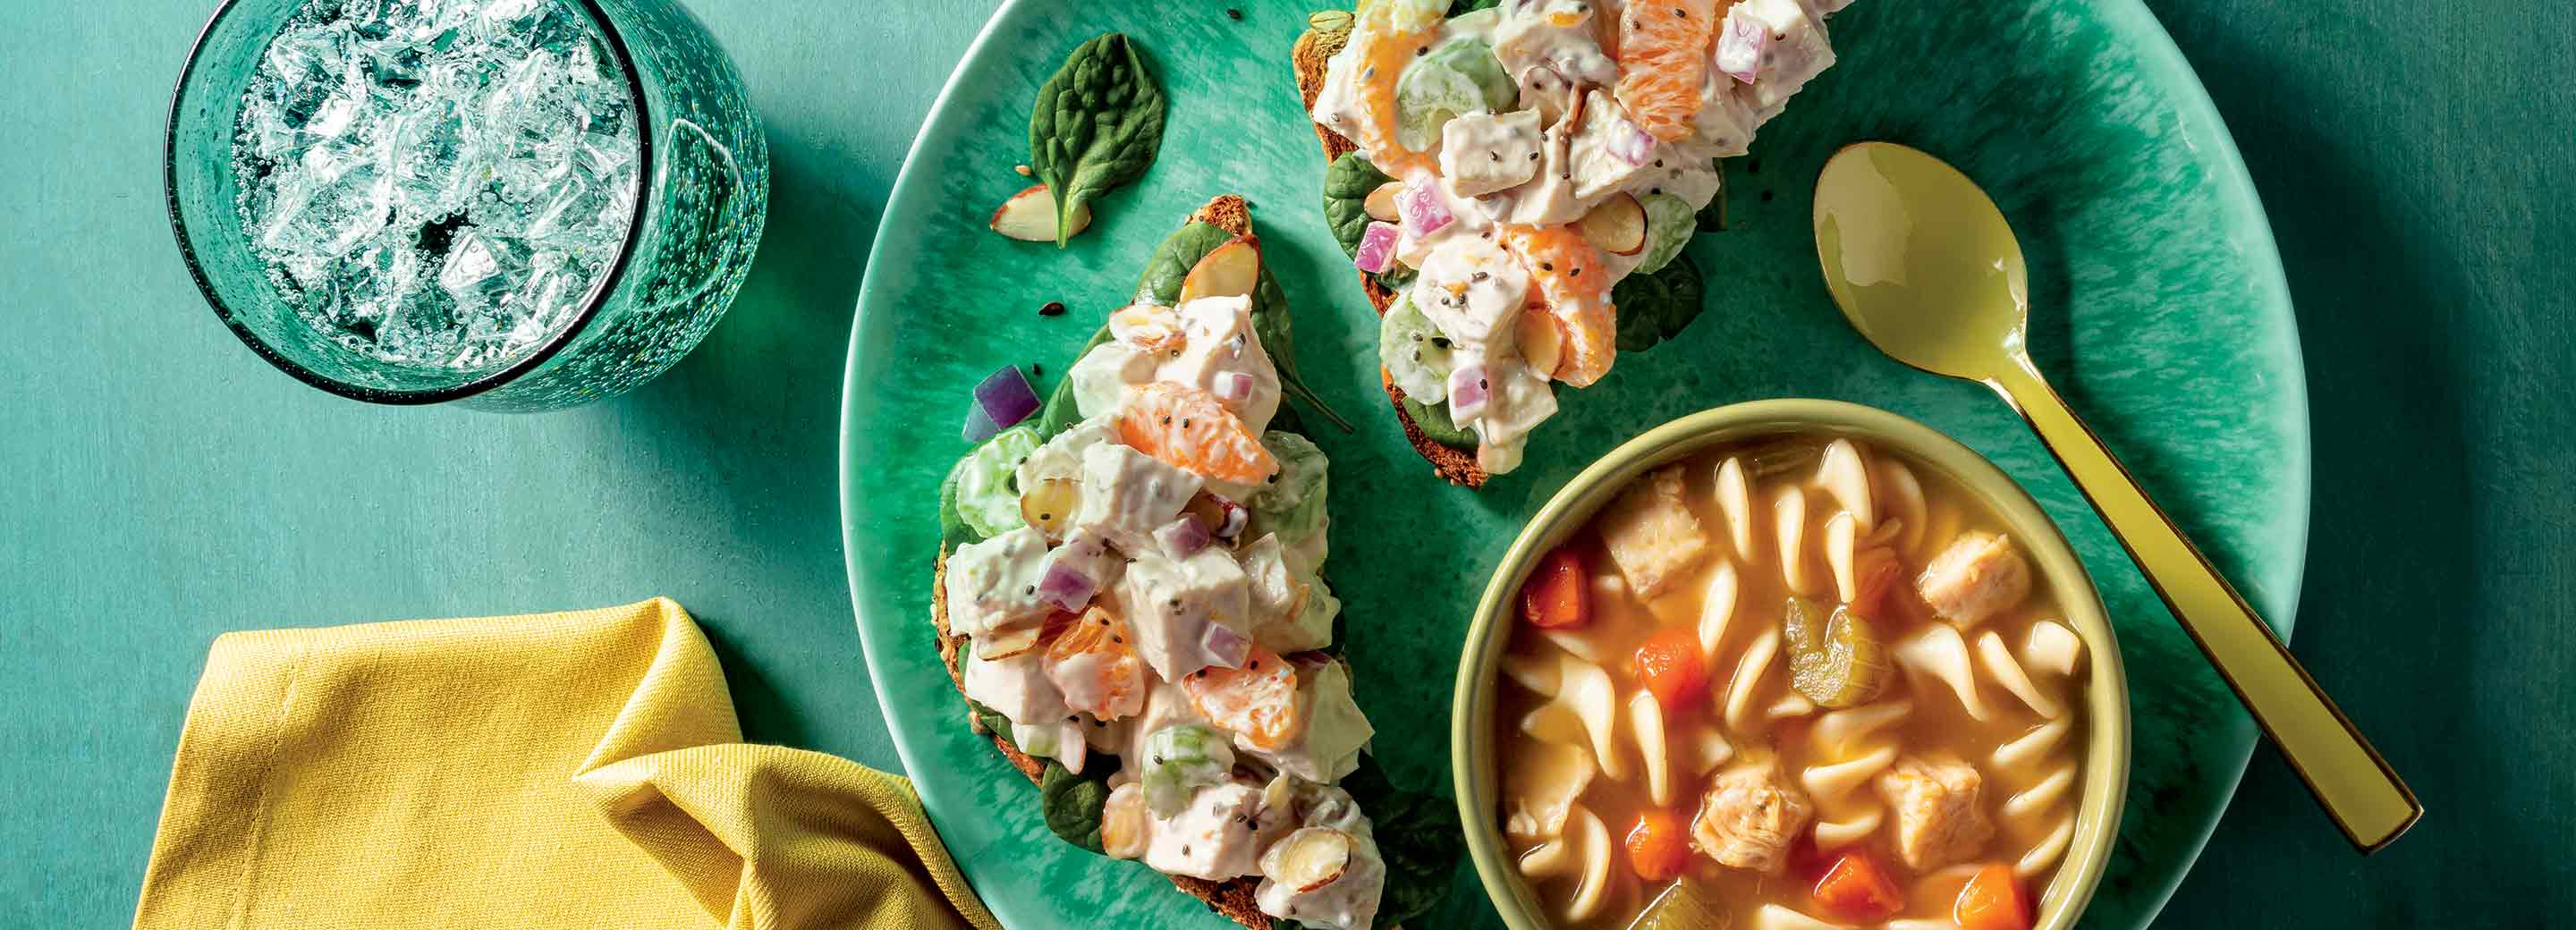 Chicken Salad with Healthy Choice Chicken Noodle Soup